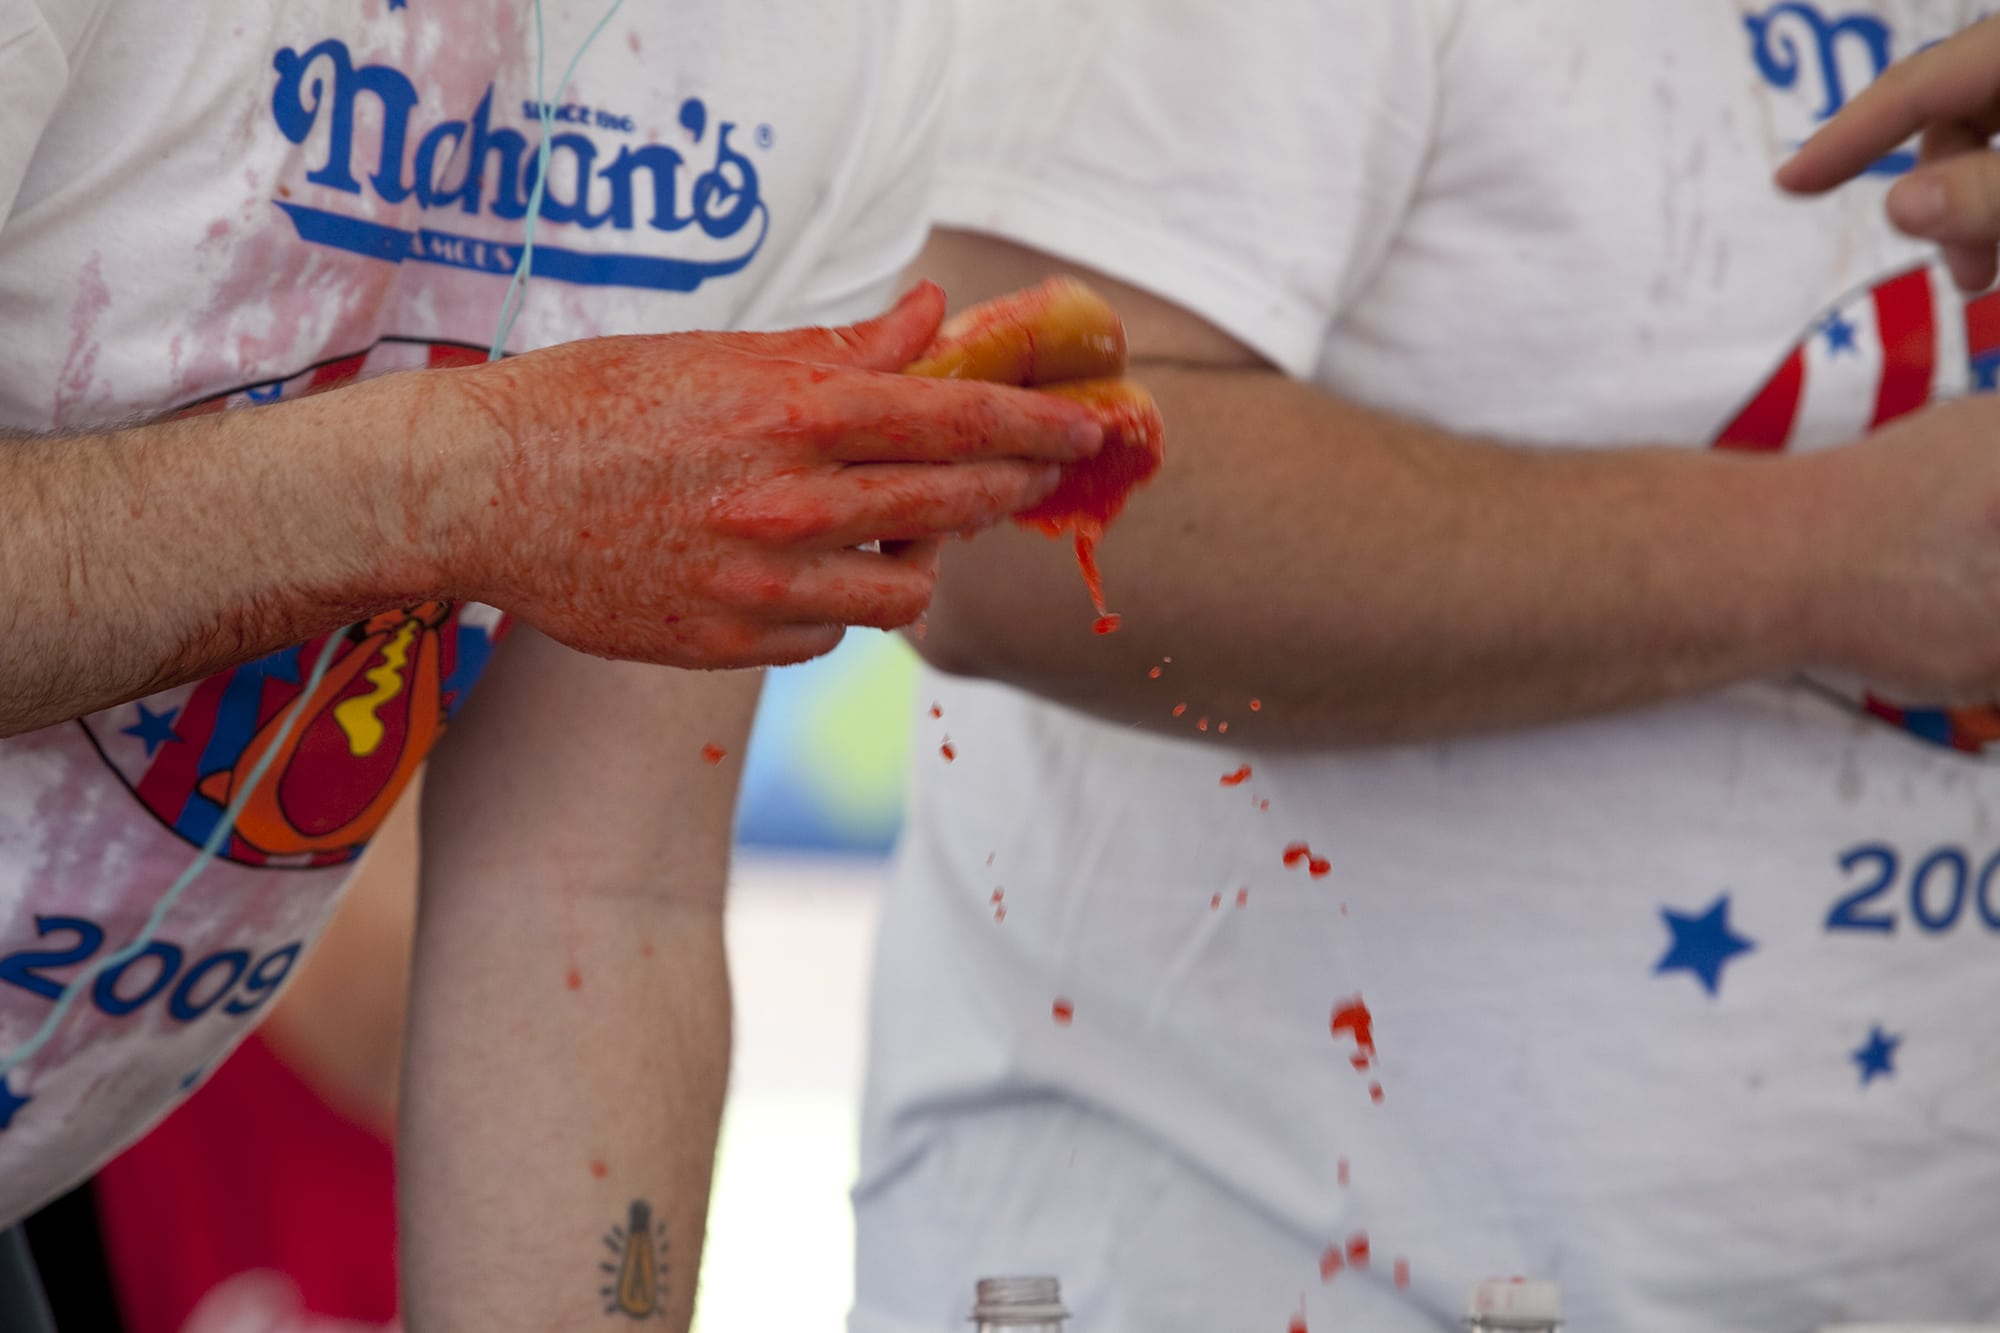 Nathan's Famous hot dog eating contest qualifier in Kansas City, Missouri